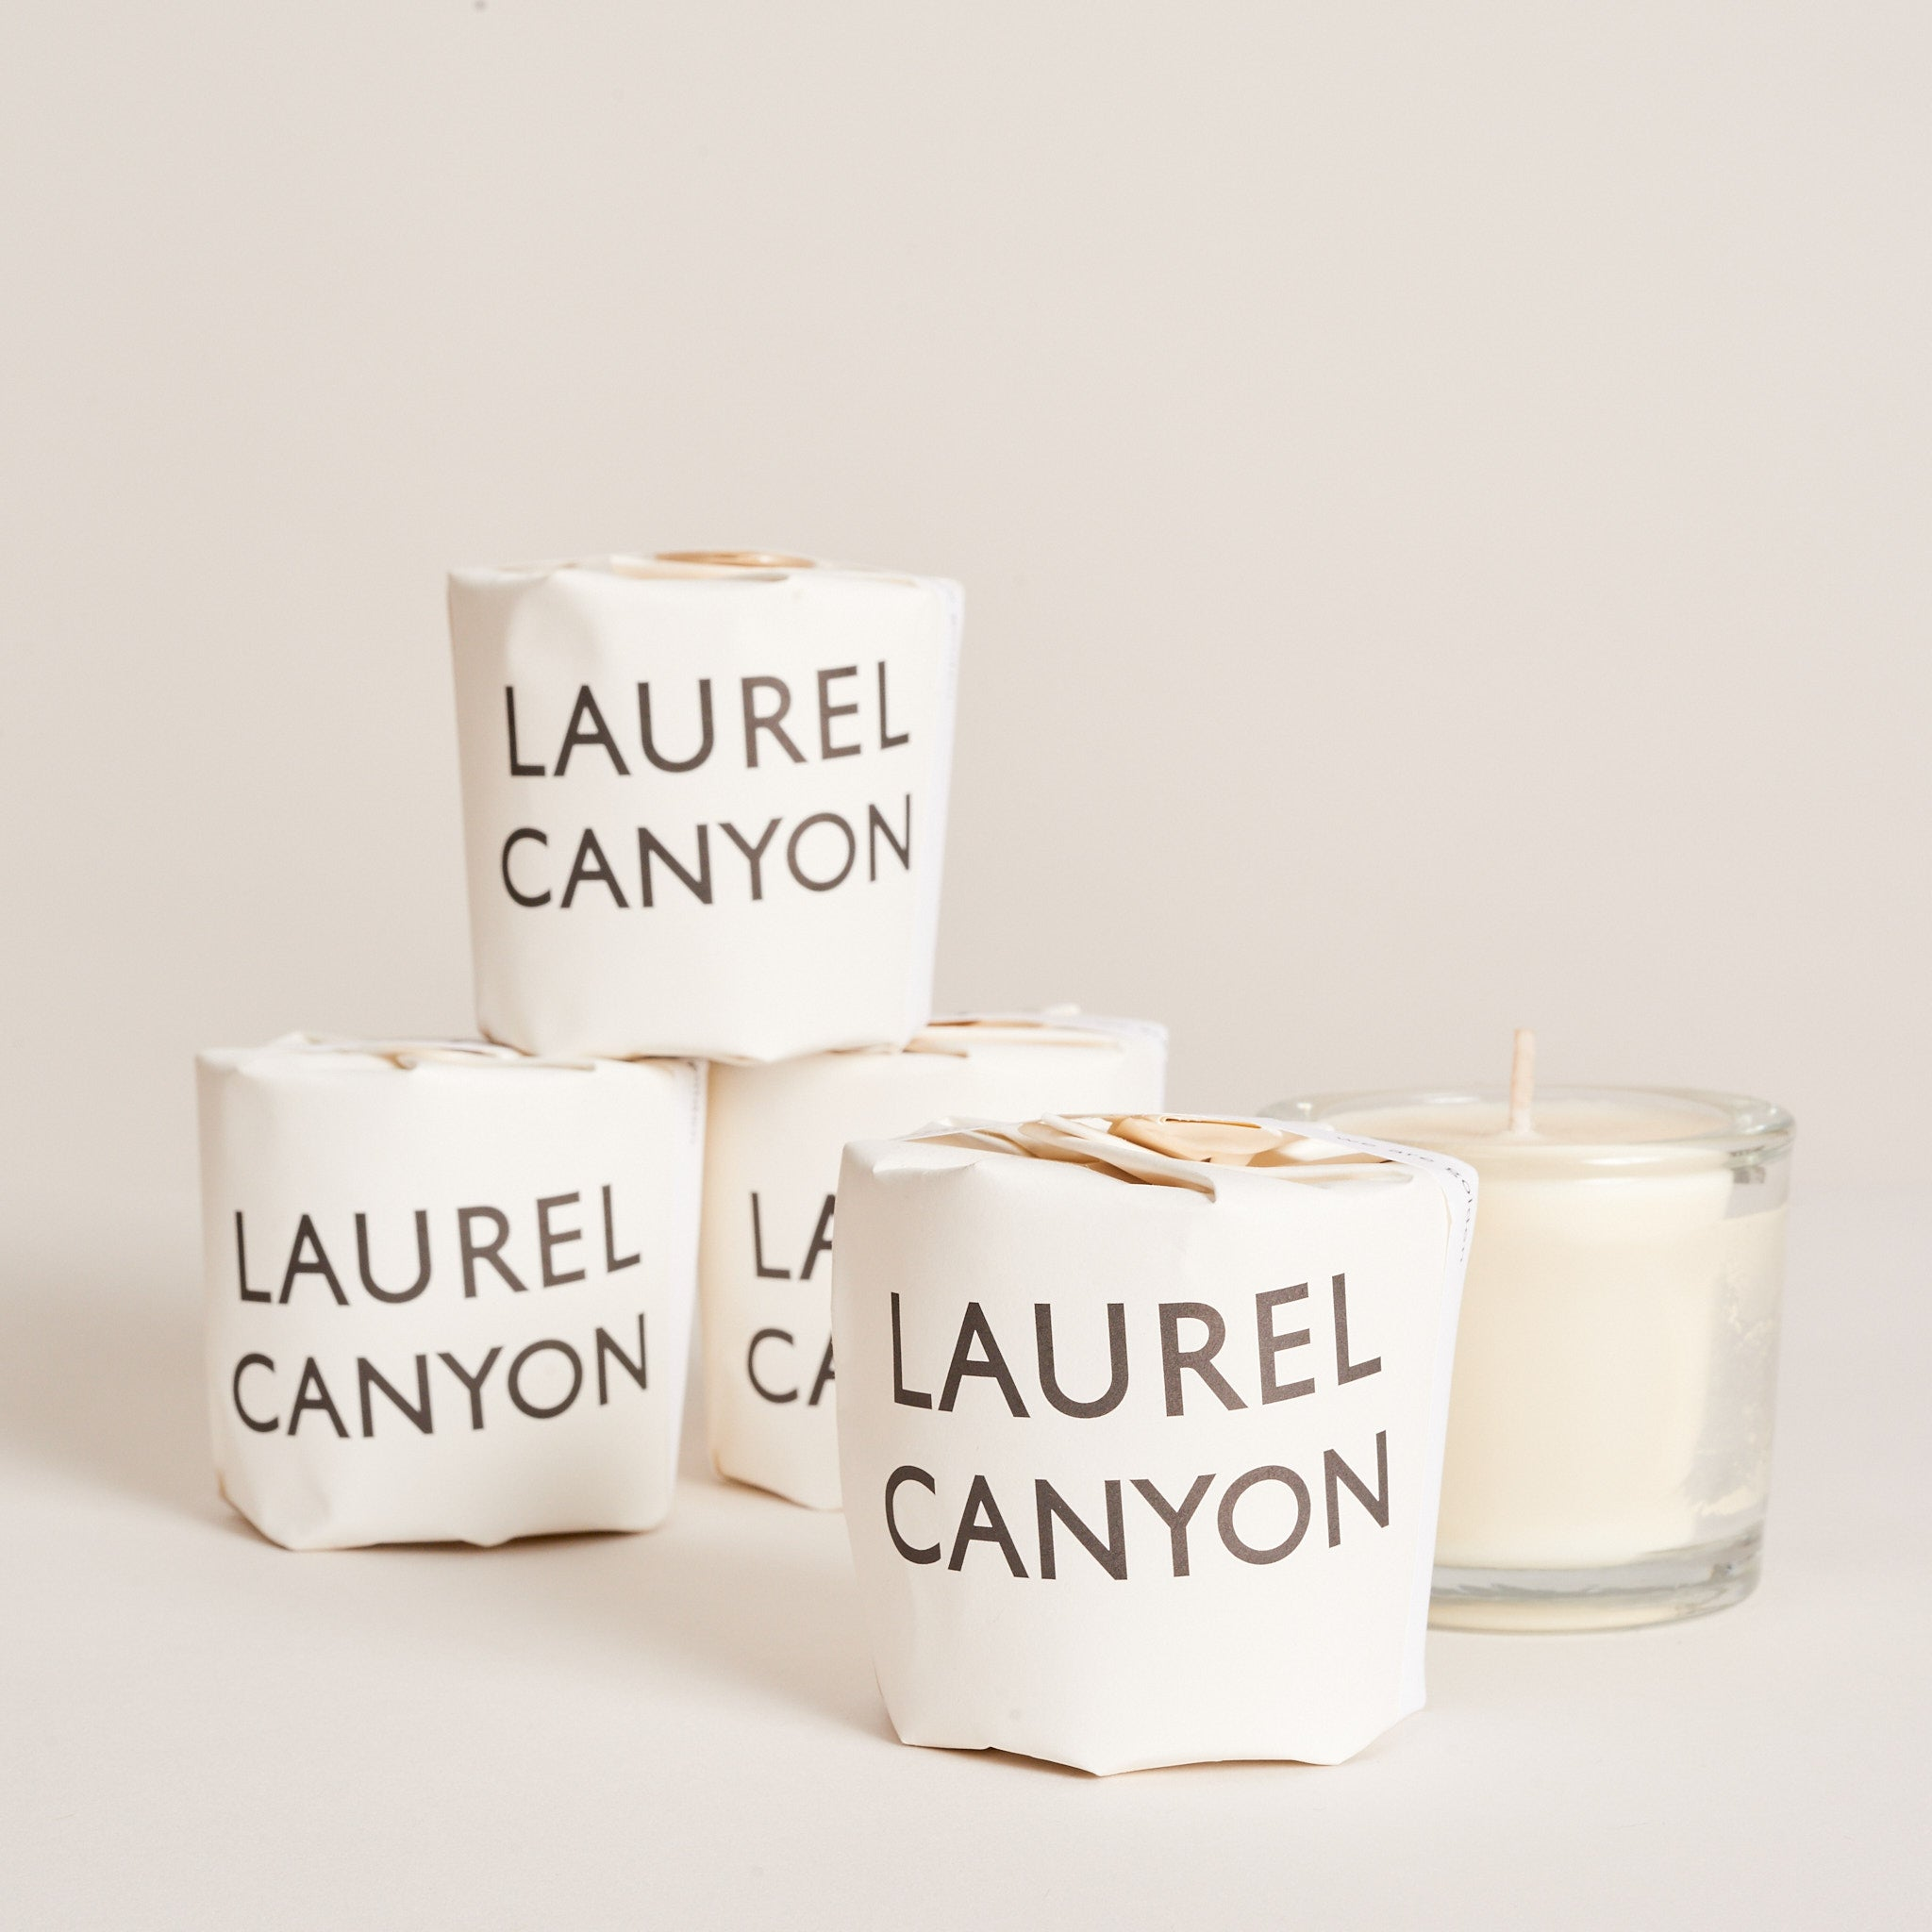 2 oz. handcrafted, hand-wrapped soy wax candle in recycled glassware.  Laurel Canyon is rich with notes of cannabis, wildflowers, apricots and suede. Approximately 16 hour burn time.  All cotton wicking. Pure soy/vegetable wax blend.2 oz. handcrafted, hand-wrapped soy wax candle in recycled glassware.  Love that Burns is earthy with notes of lemon and rose. Approximately 16 hour burn time.  All cotton wicking. Pure soy/vegetable wax blend.